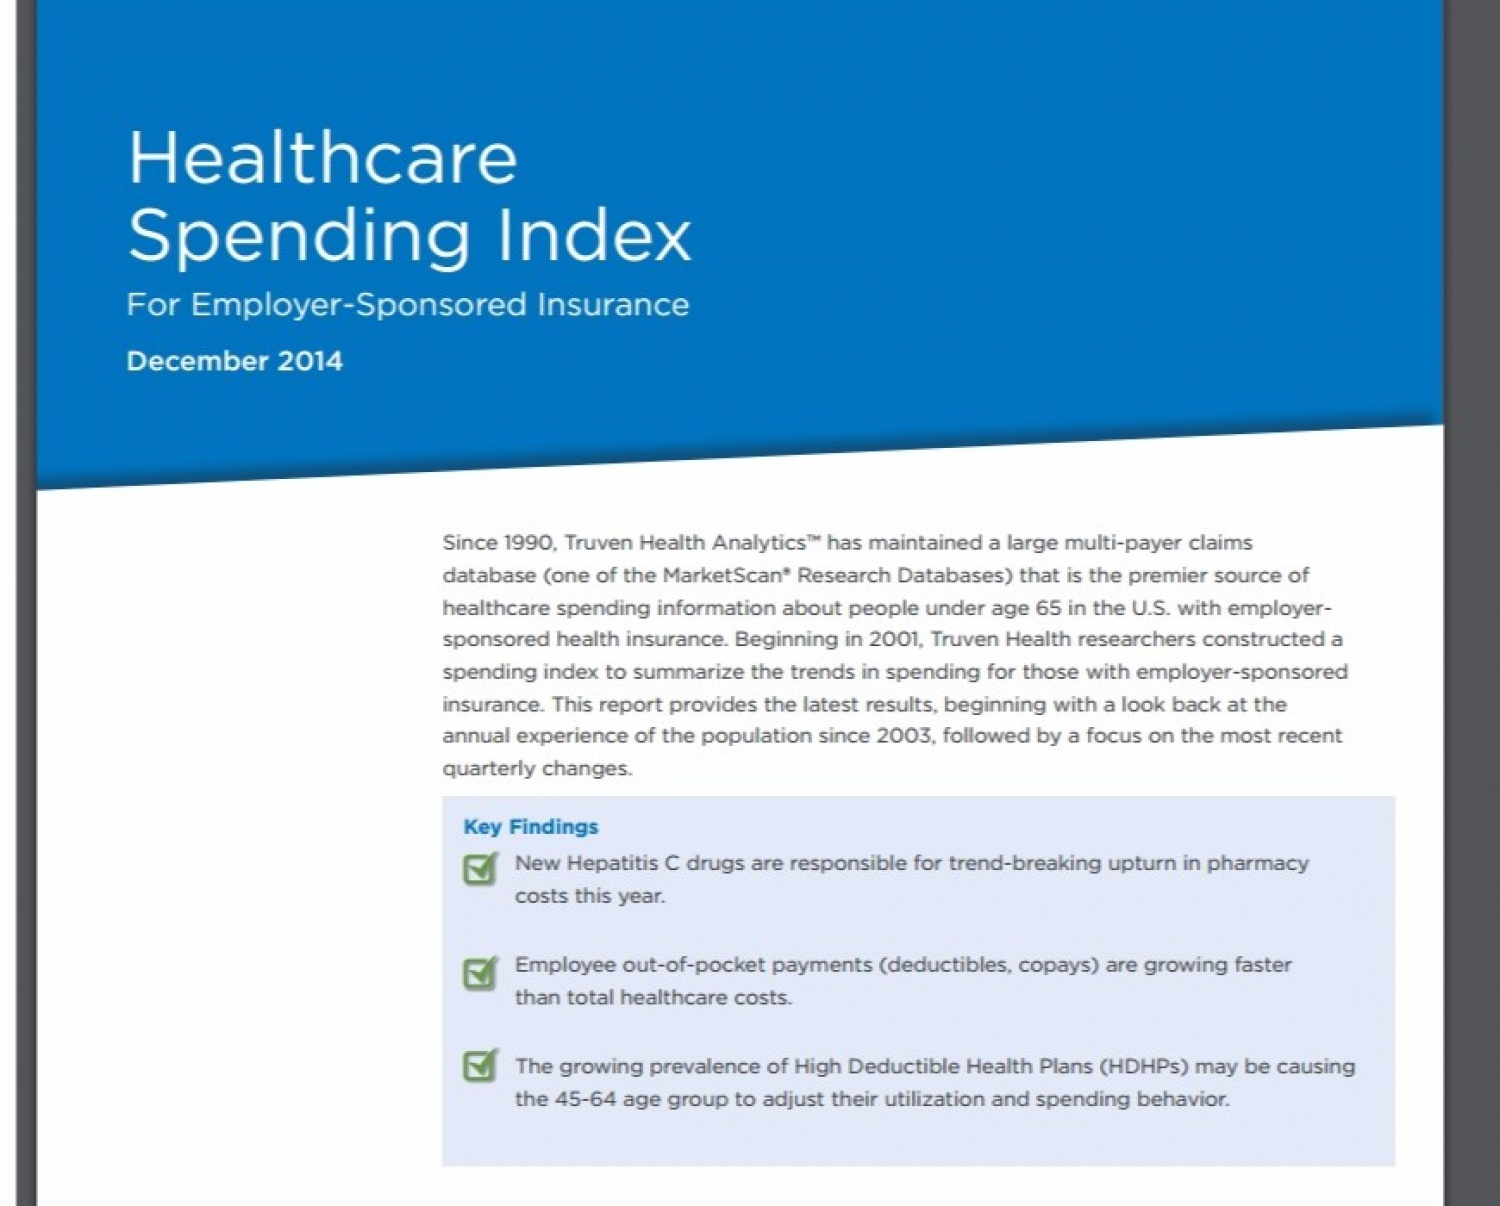 Health Care Spending Index 2014 pdf